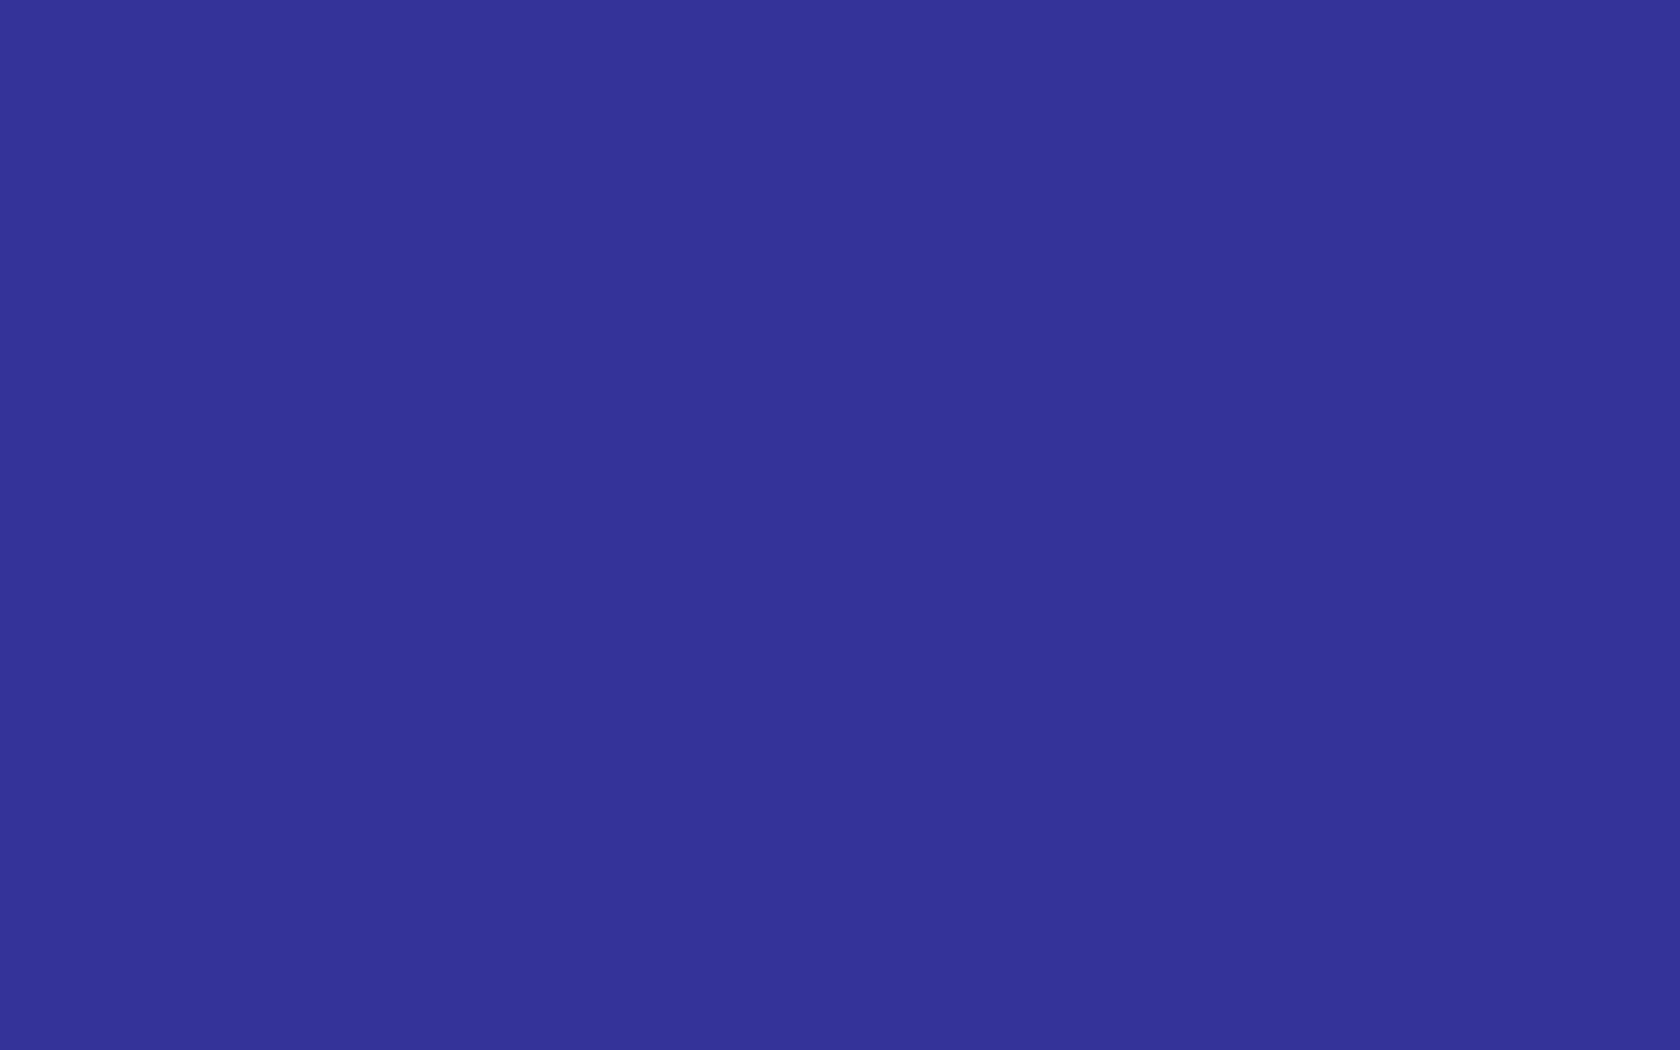 1680x1050 Blue Pigment Solid Color Background